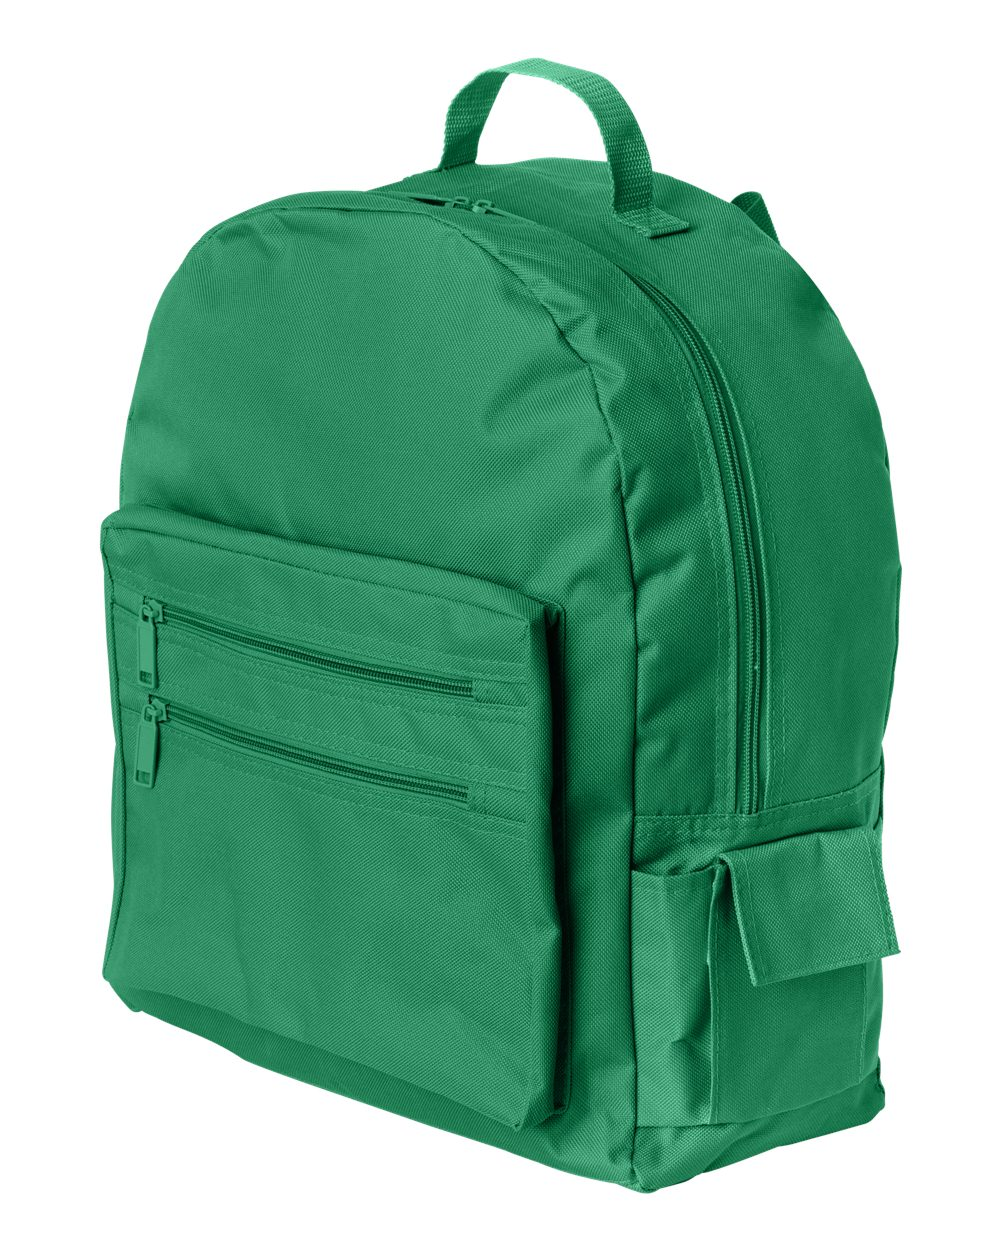 Liberty Bags 7707 - Backpack on a Budget